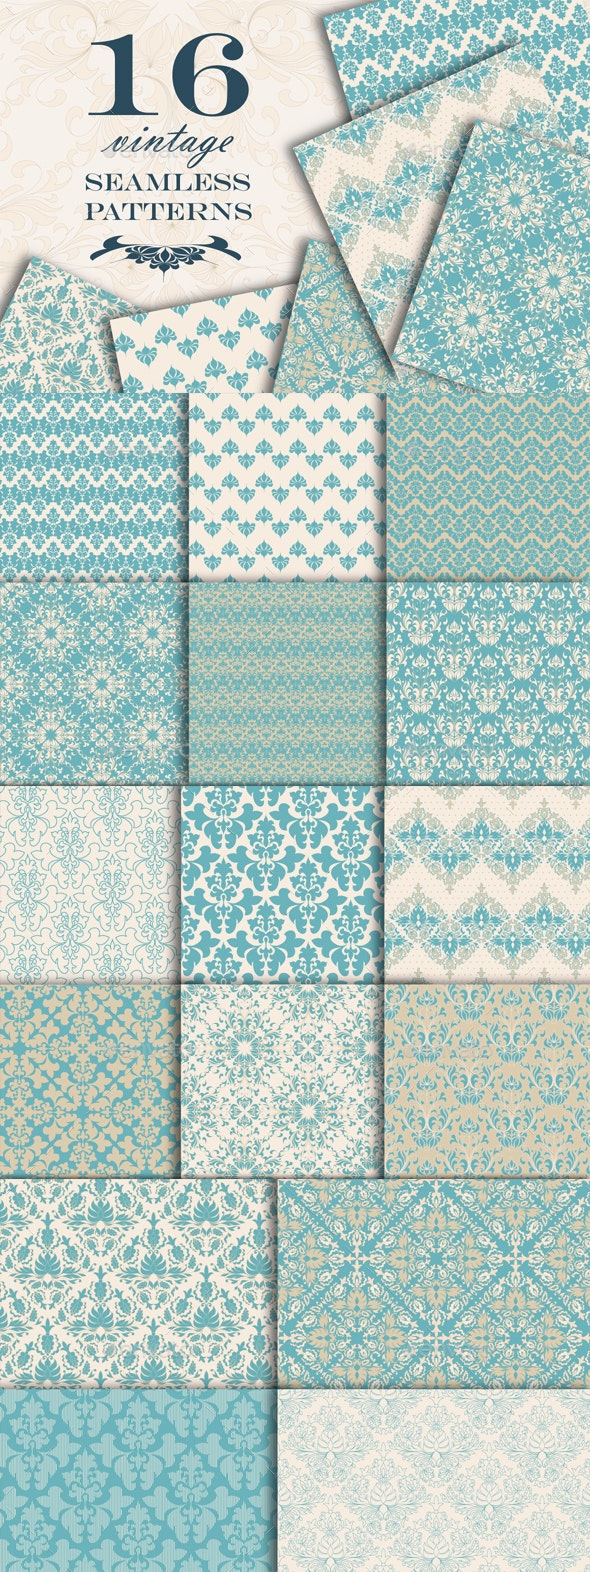 Vintage Seamless Patterns - Patterns Decorative